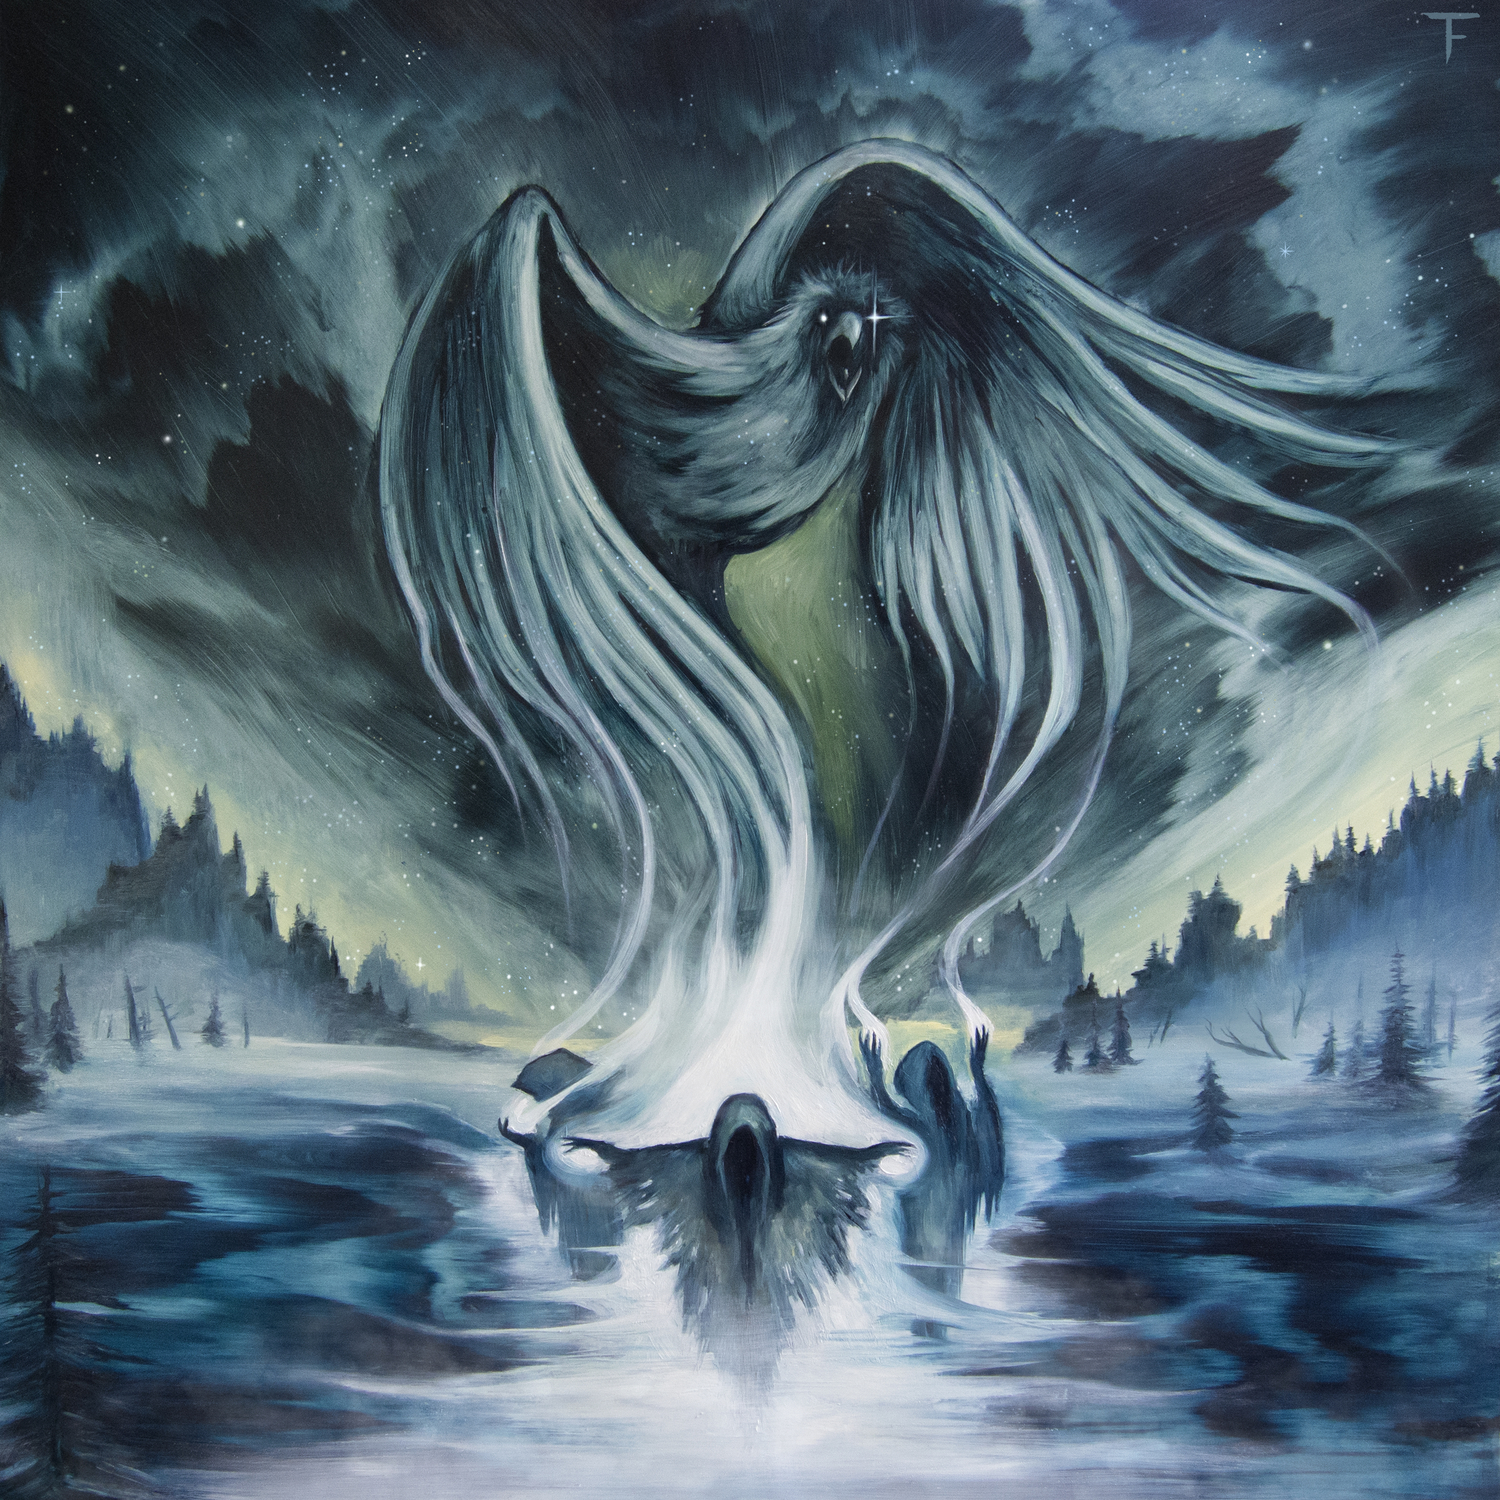 Summon the Mist Artwork by tanya finder